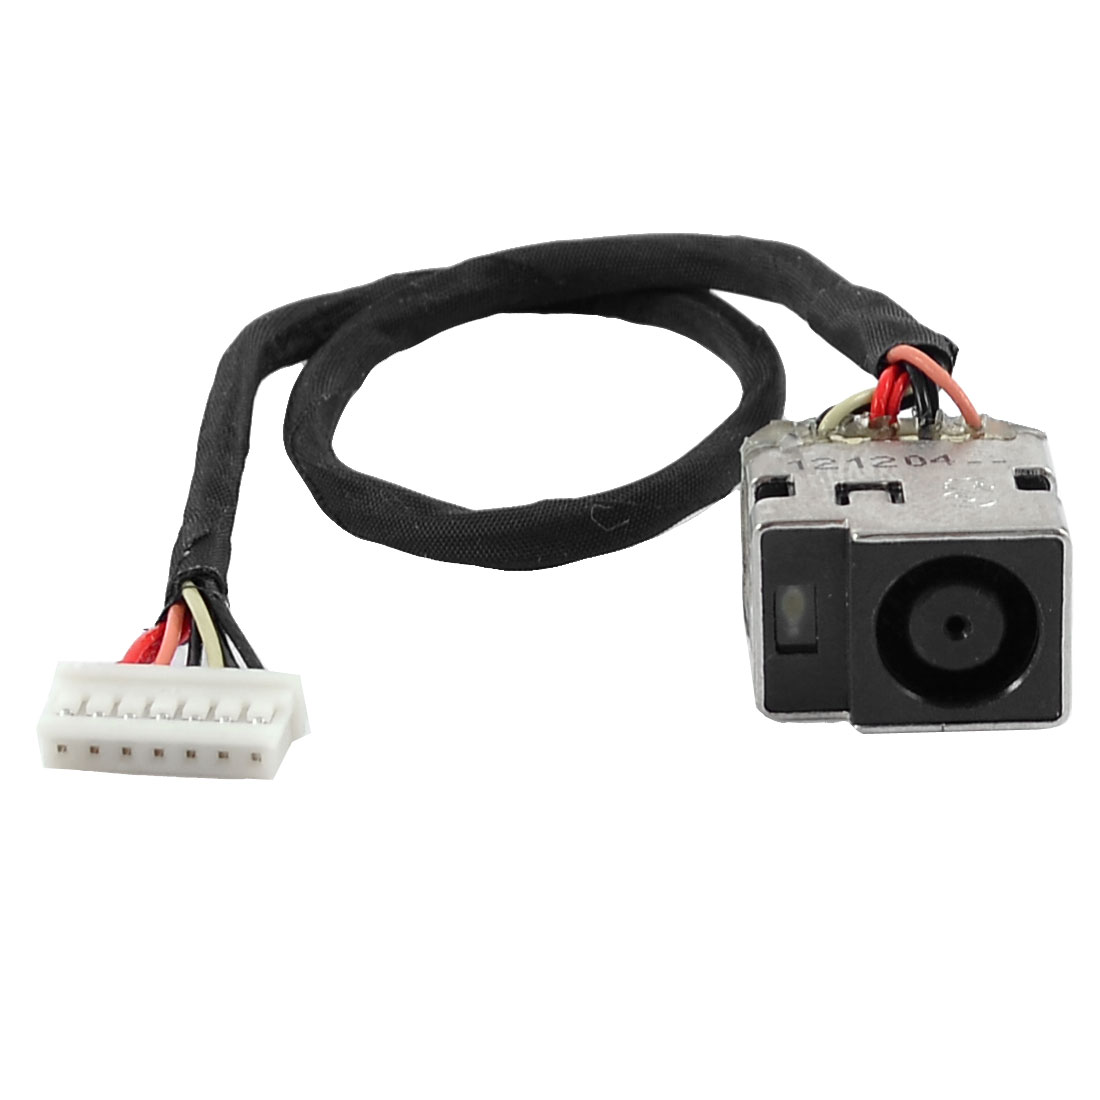 PJ216 DC Power Jack w 7 Pins Cable for Laptops Notebook